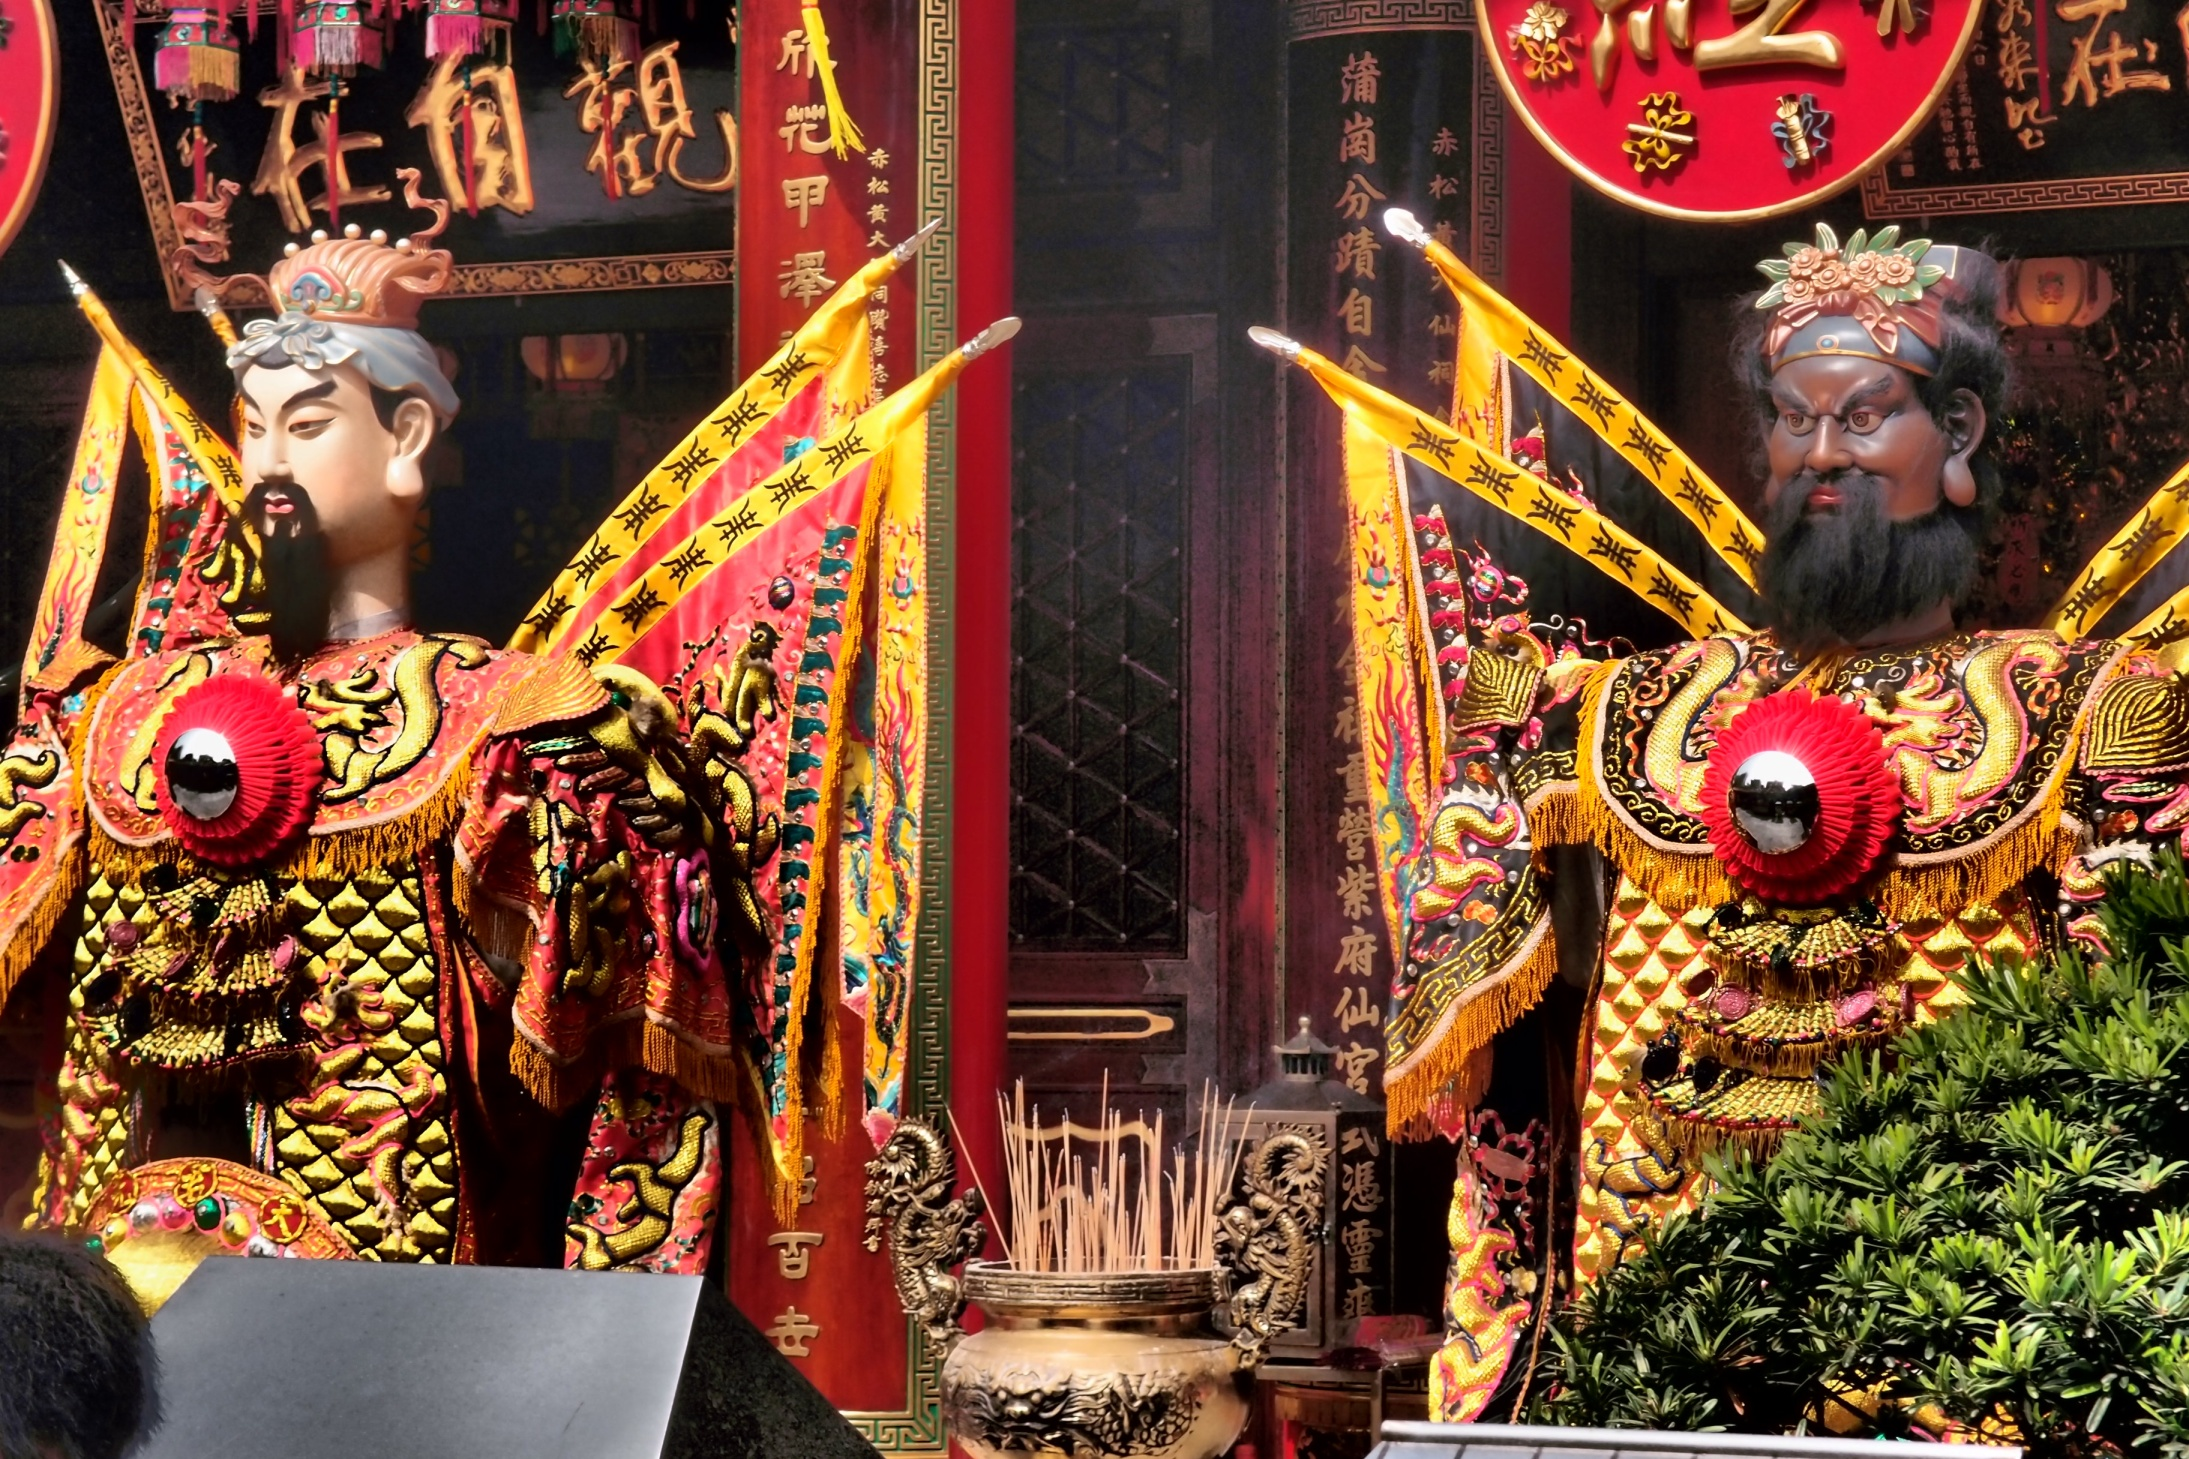 All hail the gods. The Sik Sik Yuen Wong Tai Sin Temple